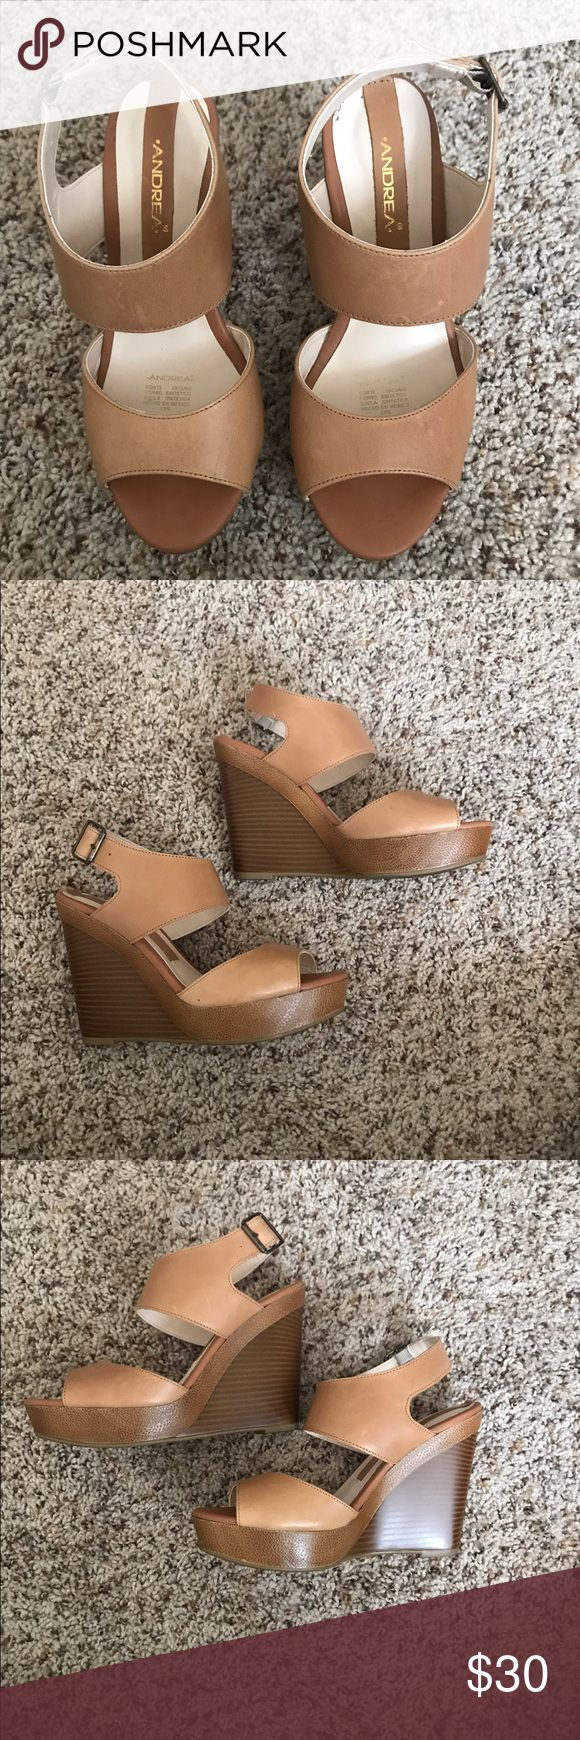 Andrea heels Andrea heels in good condition shoes come as pictured andrea Shoes